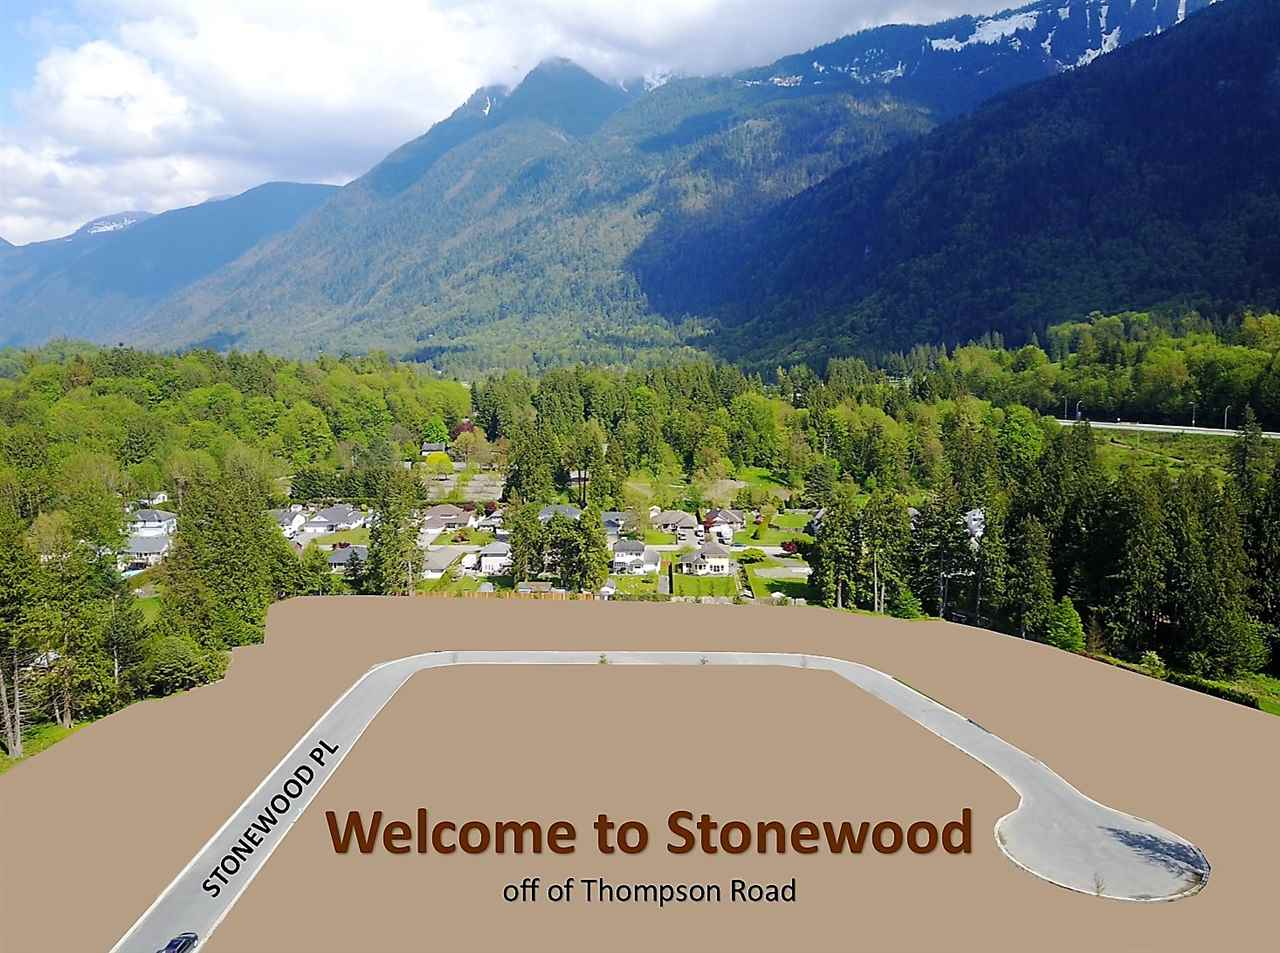 Stonewood! New single family home lots in a pristine country setting. Large lots have amazing mountain views, level lots, great area! Lots are fully services. Building scheme in place, basements permitted. Very nice area!